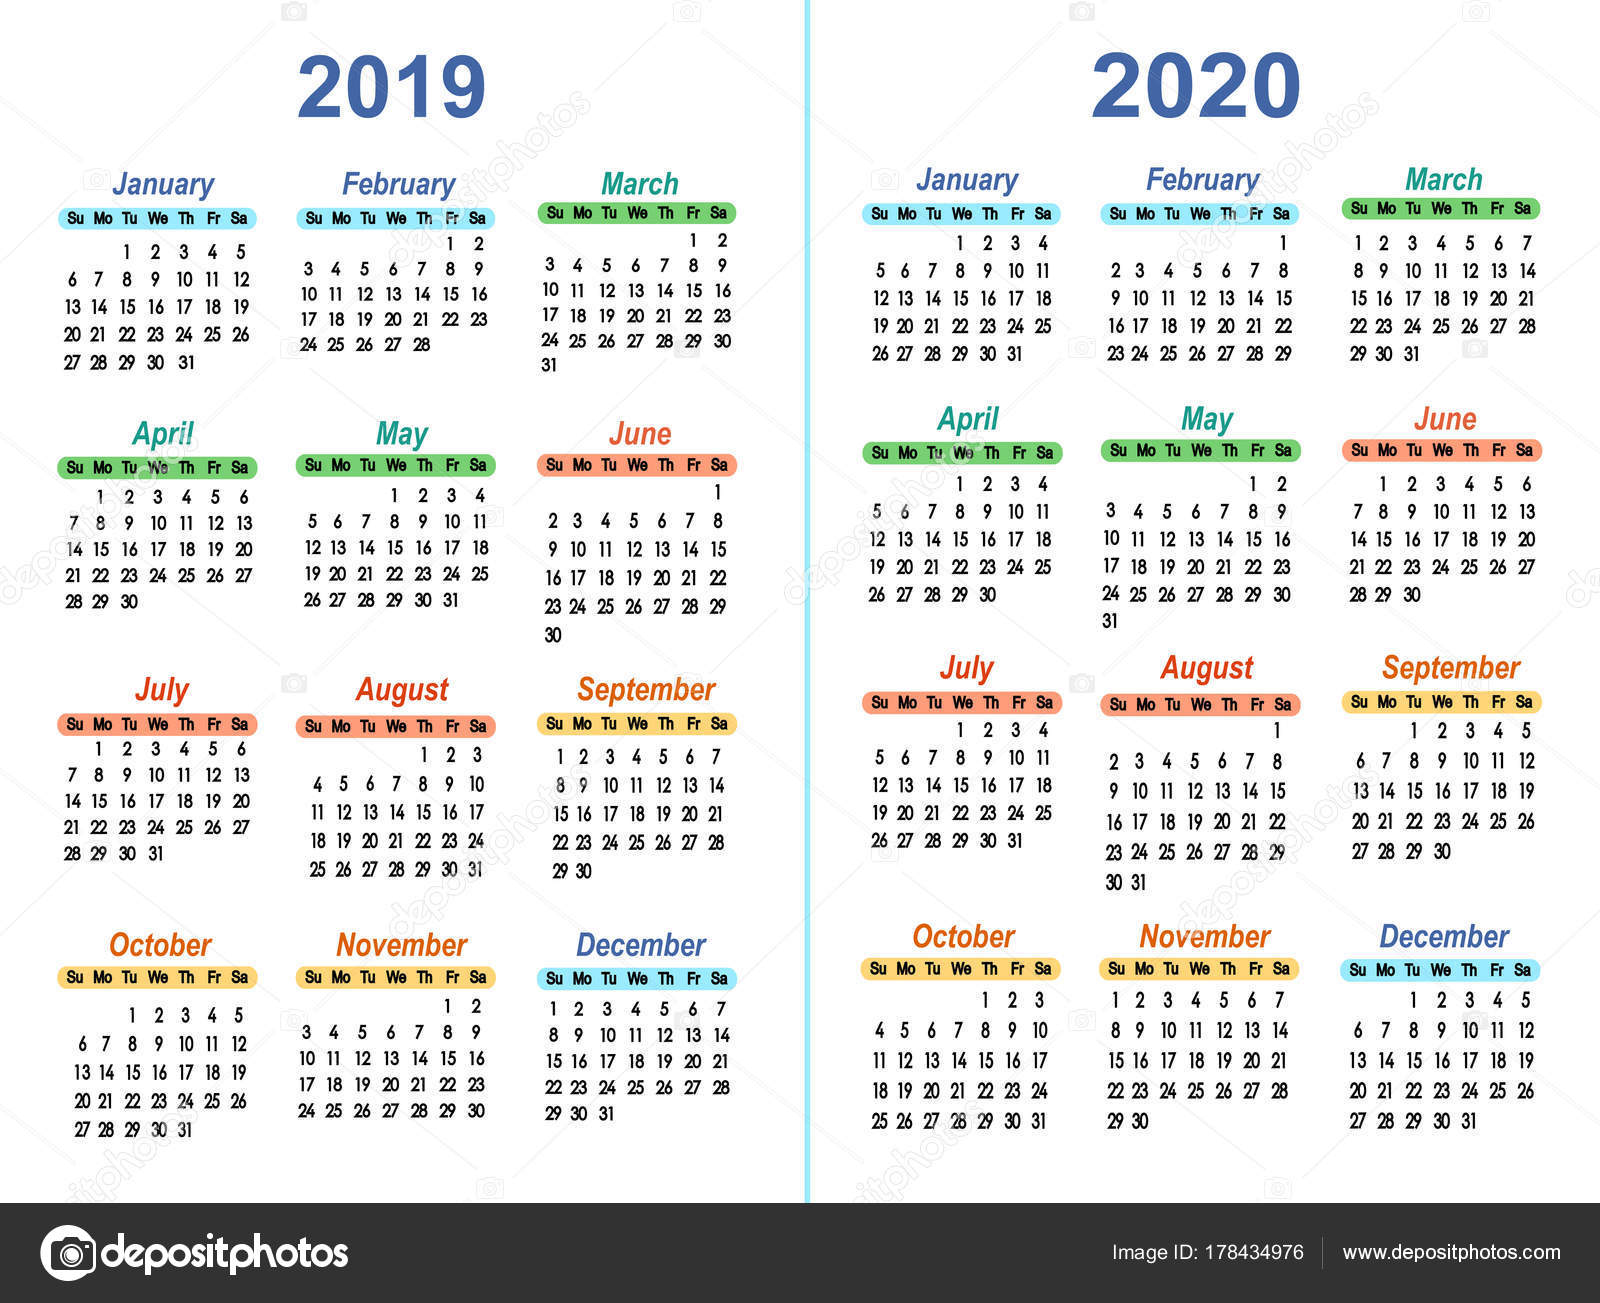 Calendario Annuale 2020 Italiano.Vettore Calendario 2019 Template Vettoriale Calendari